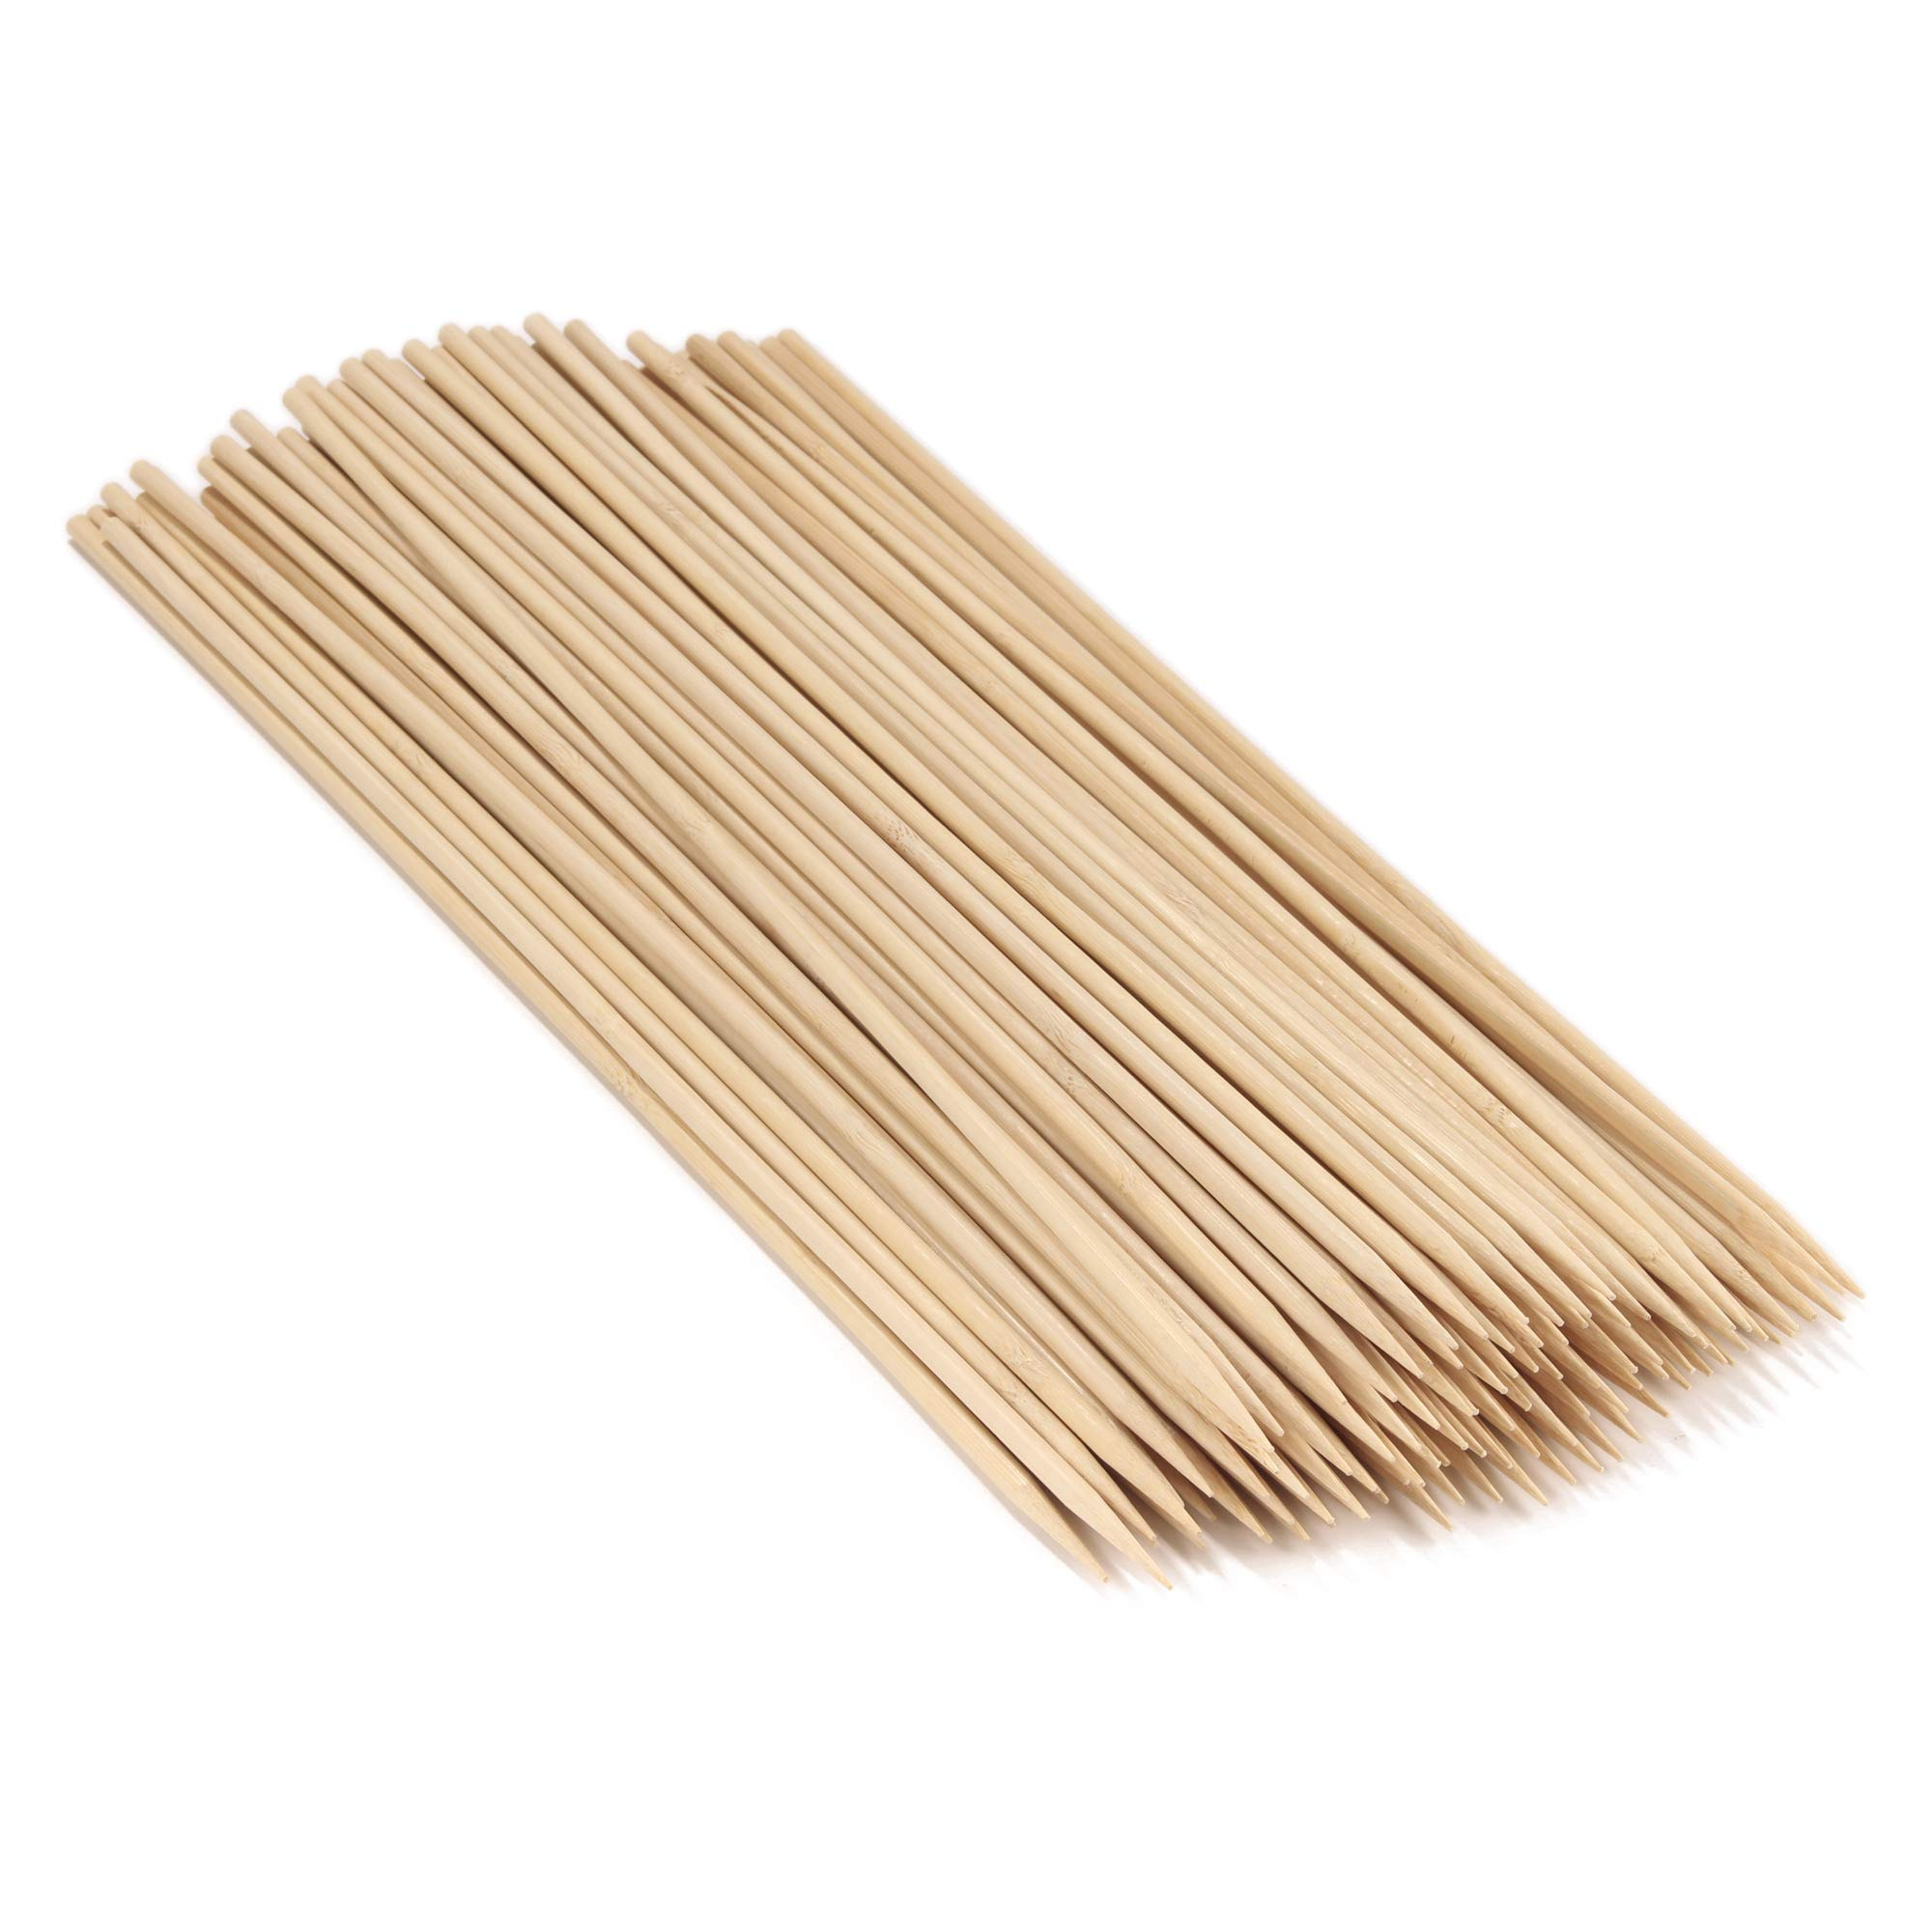 BambooMN 15'' Long x 5mm Thick Sharp Point Bamboo Kabab Satay BBQ Skewers Party Supplies, 100 Pieces